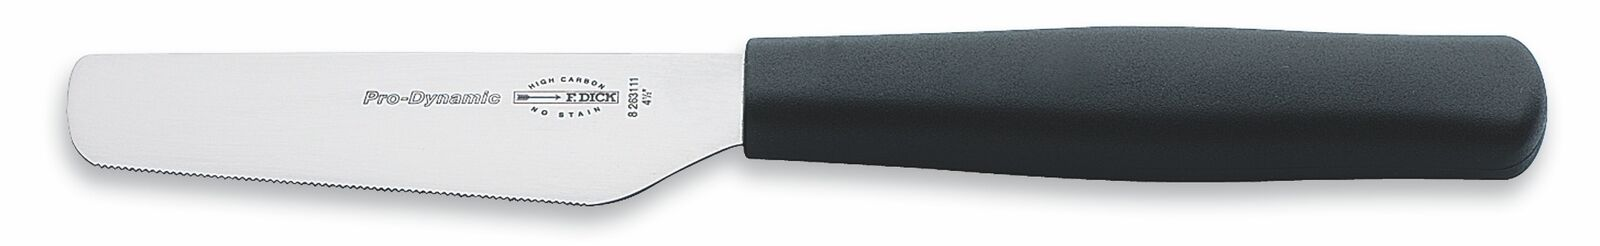 "F. Dick (8263111) 4 1/2"" Breakfast Knife, Serrated Edge-cityfoodequipment.com"